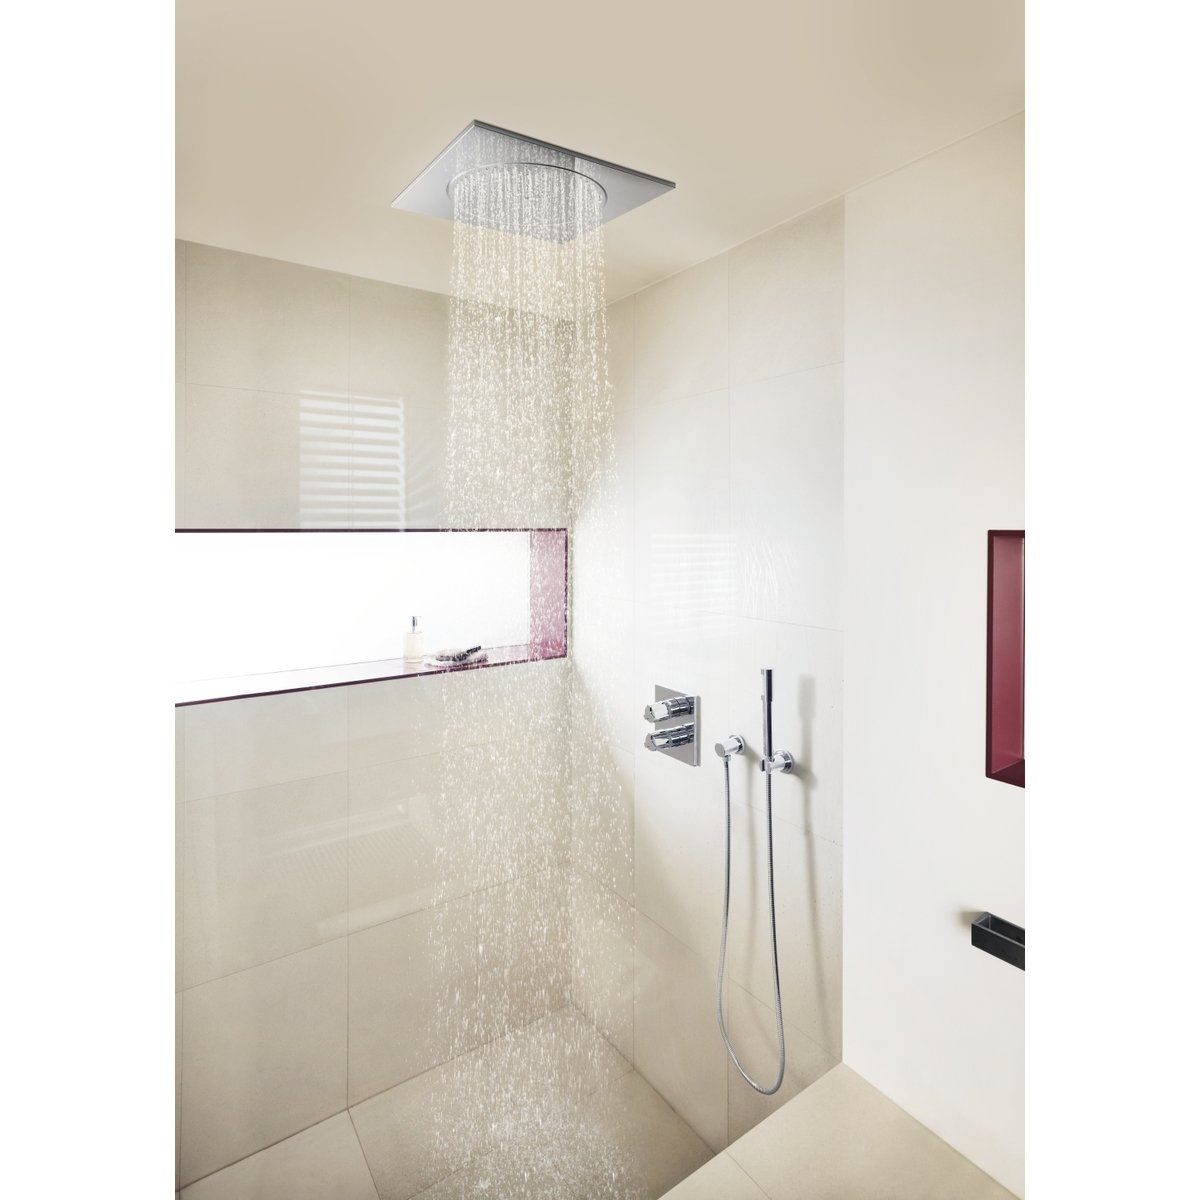 grohe rainshower plafonddouche rainshower f 25 4x25 4cm aansluiting 1 2 chroom 27467000. Black Bedroom Furniture Sets. Home Design Ideas